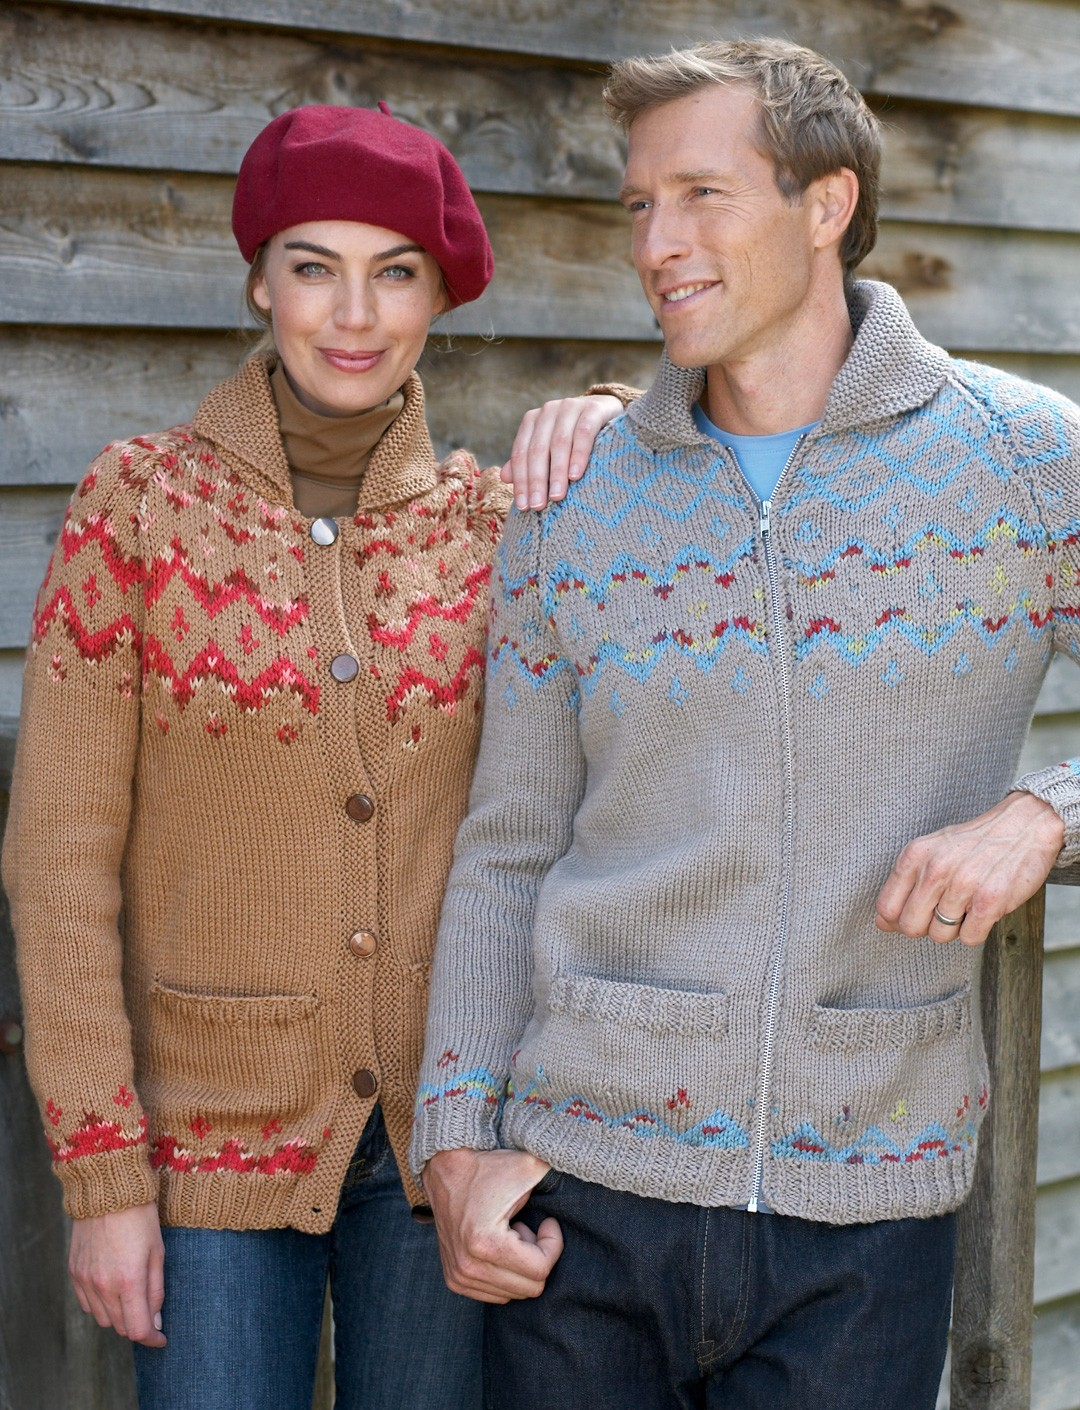 Free Knitting Patterns For Finger Puppets : Bernat His & Hers Fair Isle Cardigans, Knit Pattern Yarnspirations